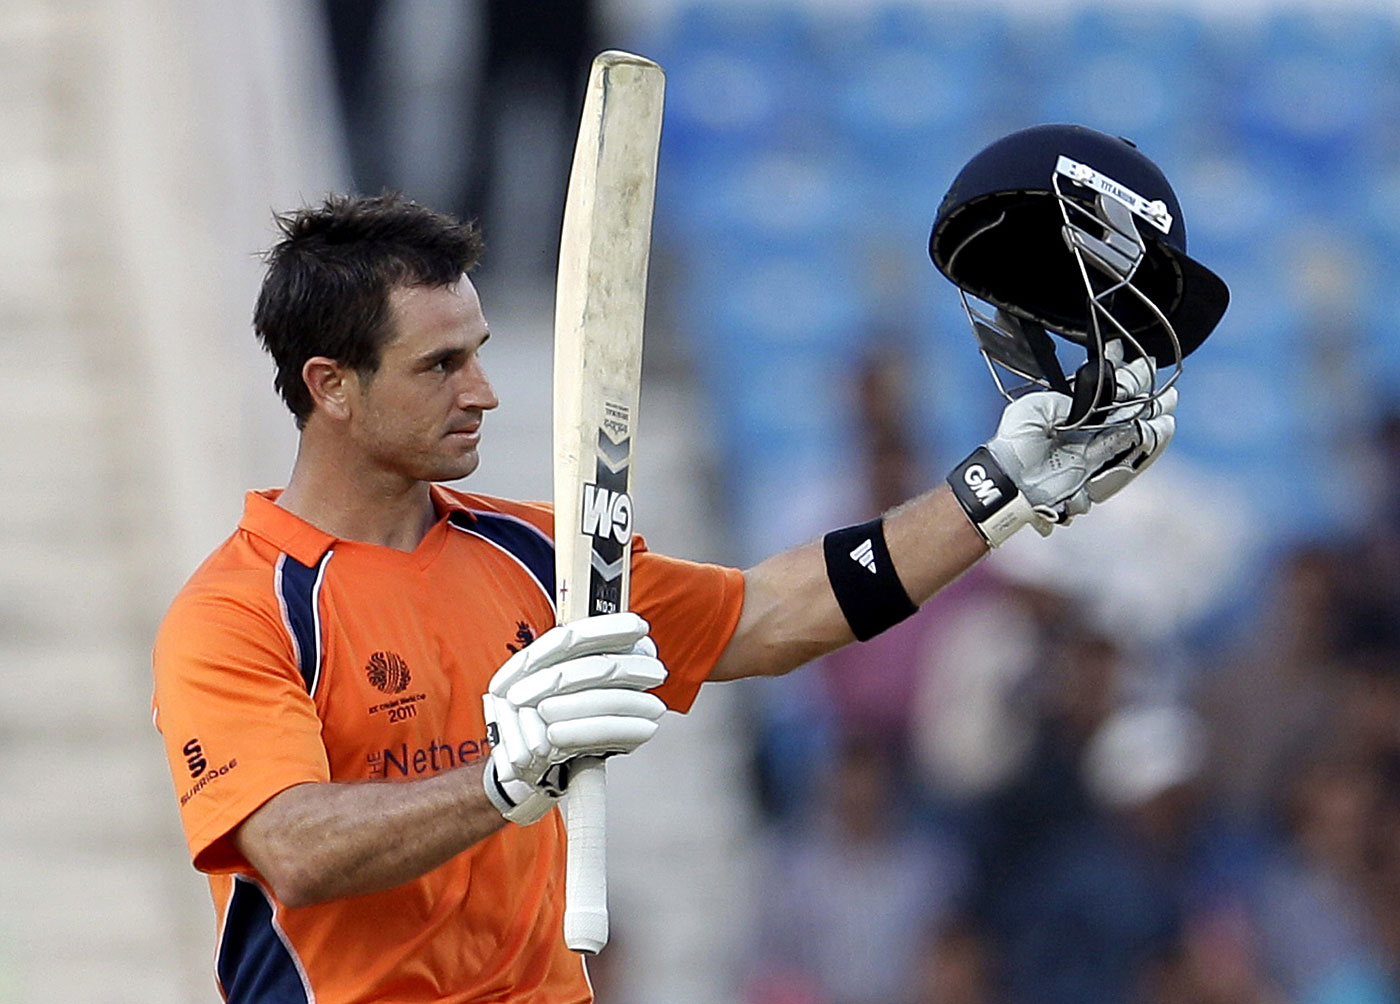 Frequent-flying Dutchman: Ryan ten Doeschate, one of the country's best cricketers, is a sought-after overseas pro in T20 leagues, but he hasn't played for Netherlands in nearly four years